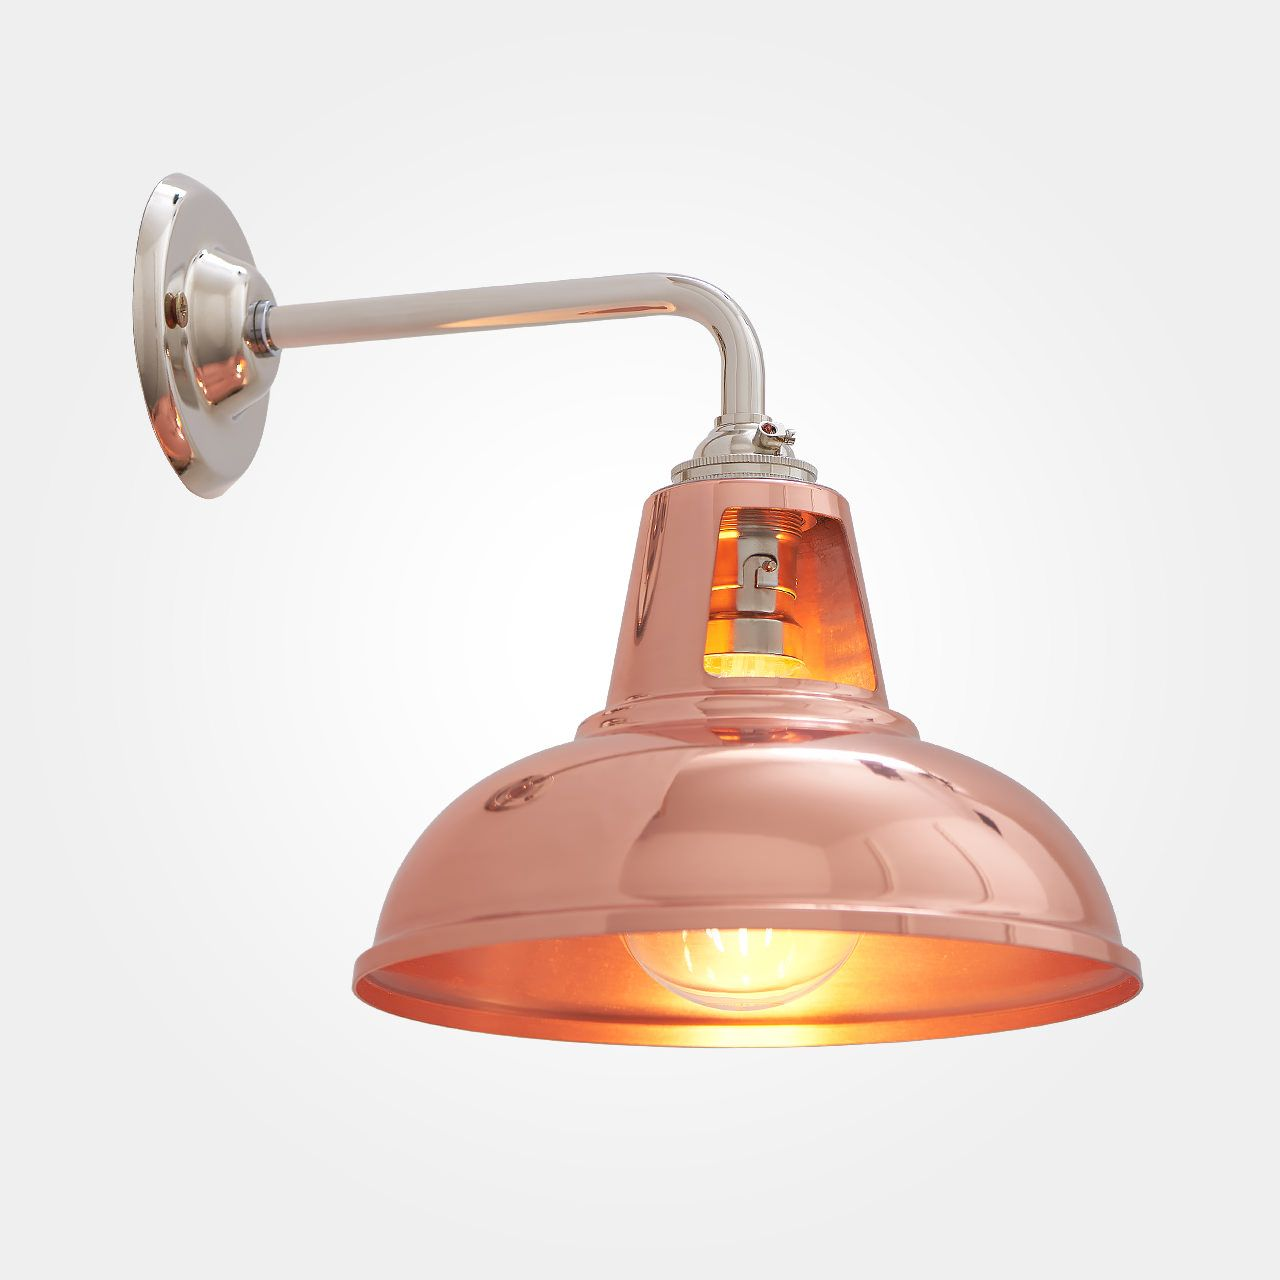 Vintage Copper Wall Lights : Coolicon Wall Light - Copper Interiors, Vintage style and Copper